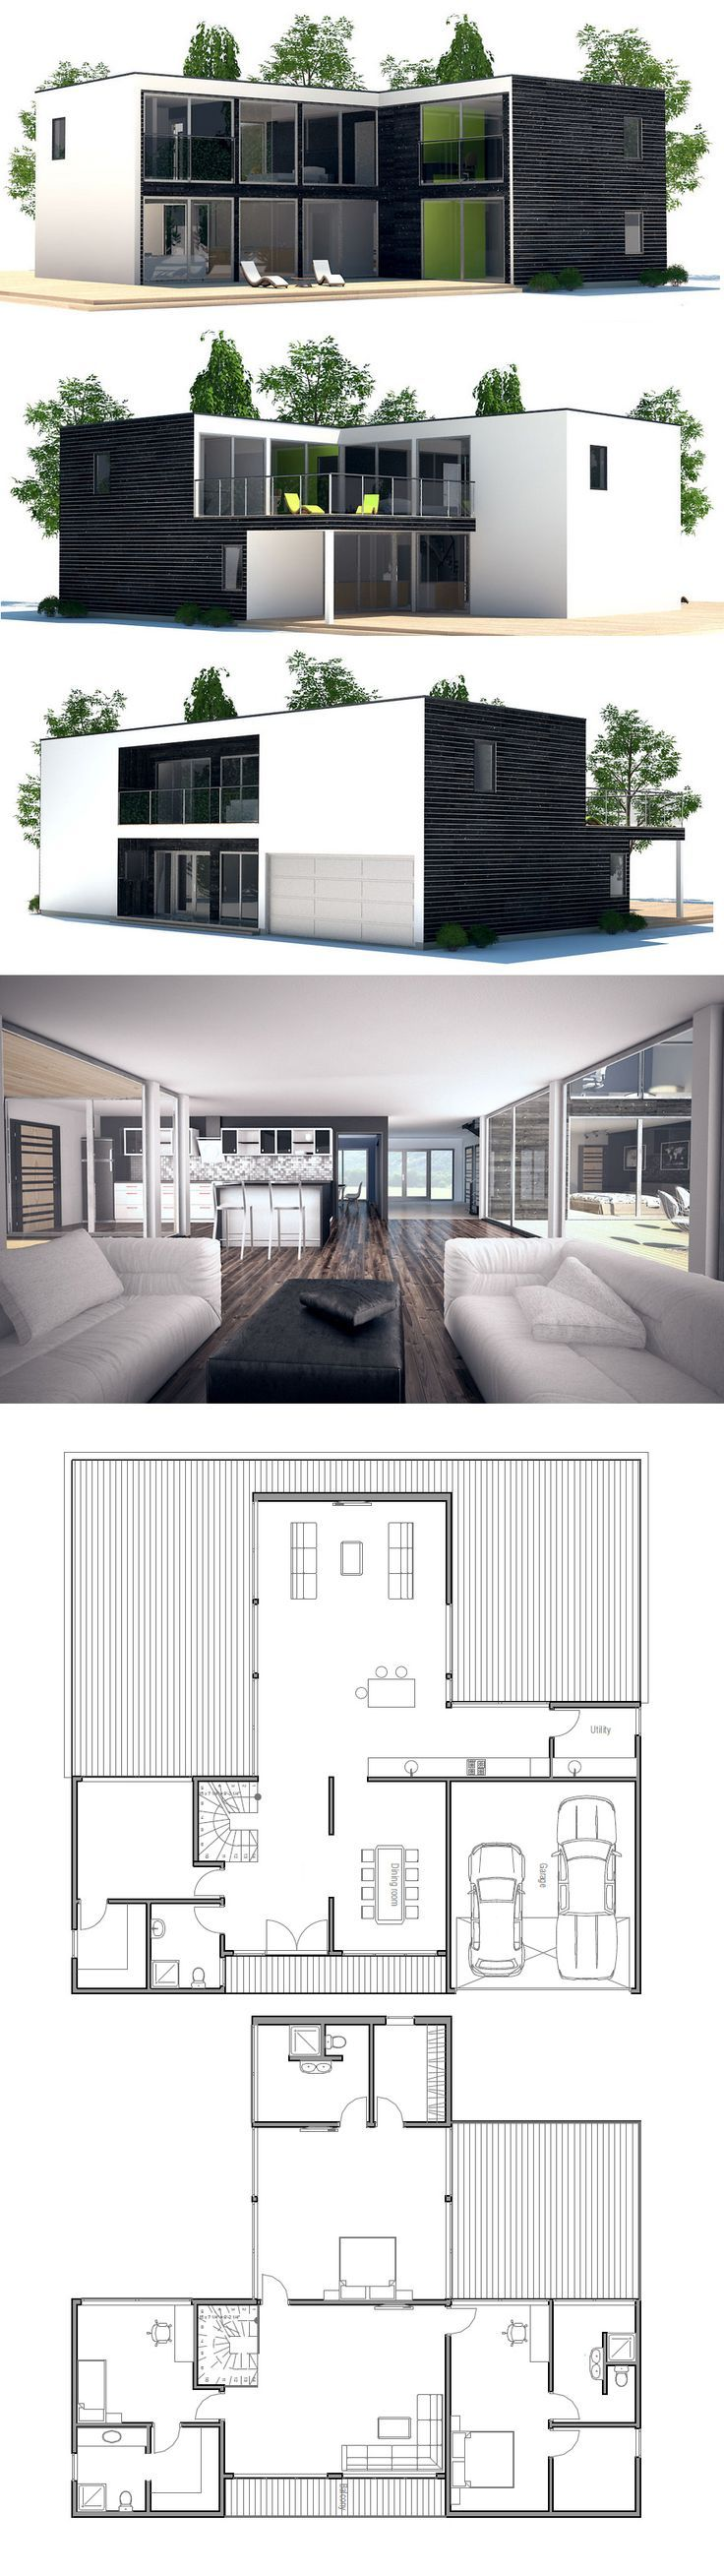 67 best Shipping Container Homes images on Pinterest | Container ...